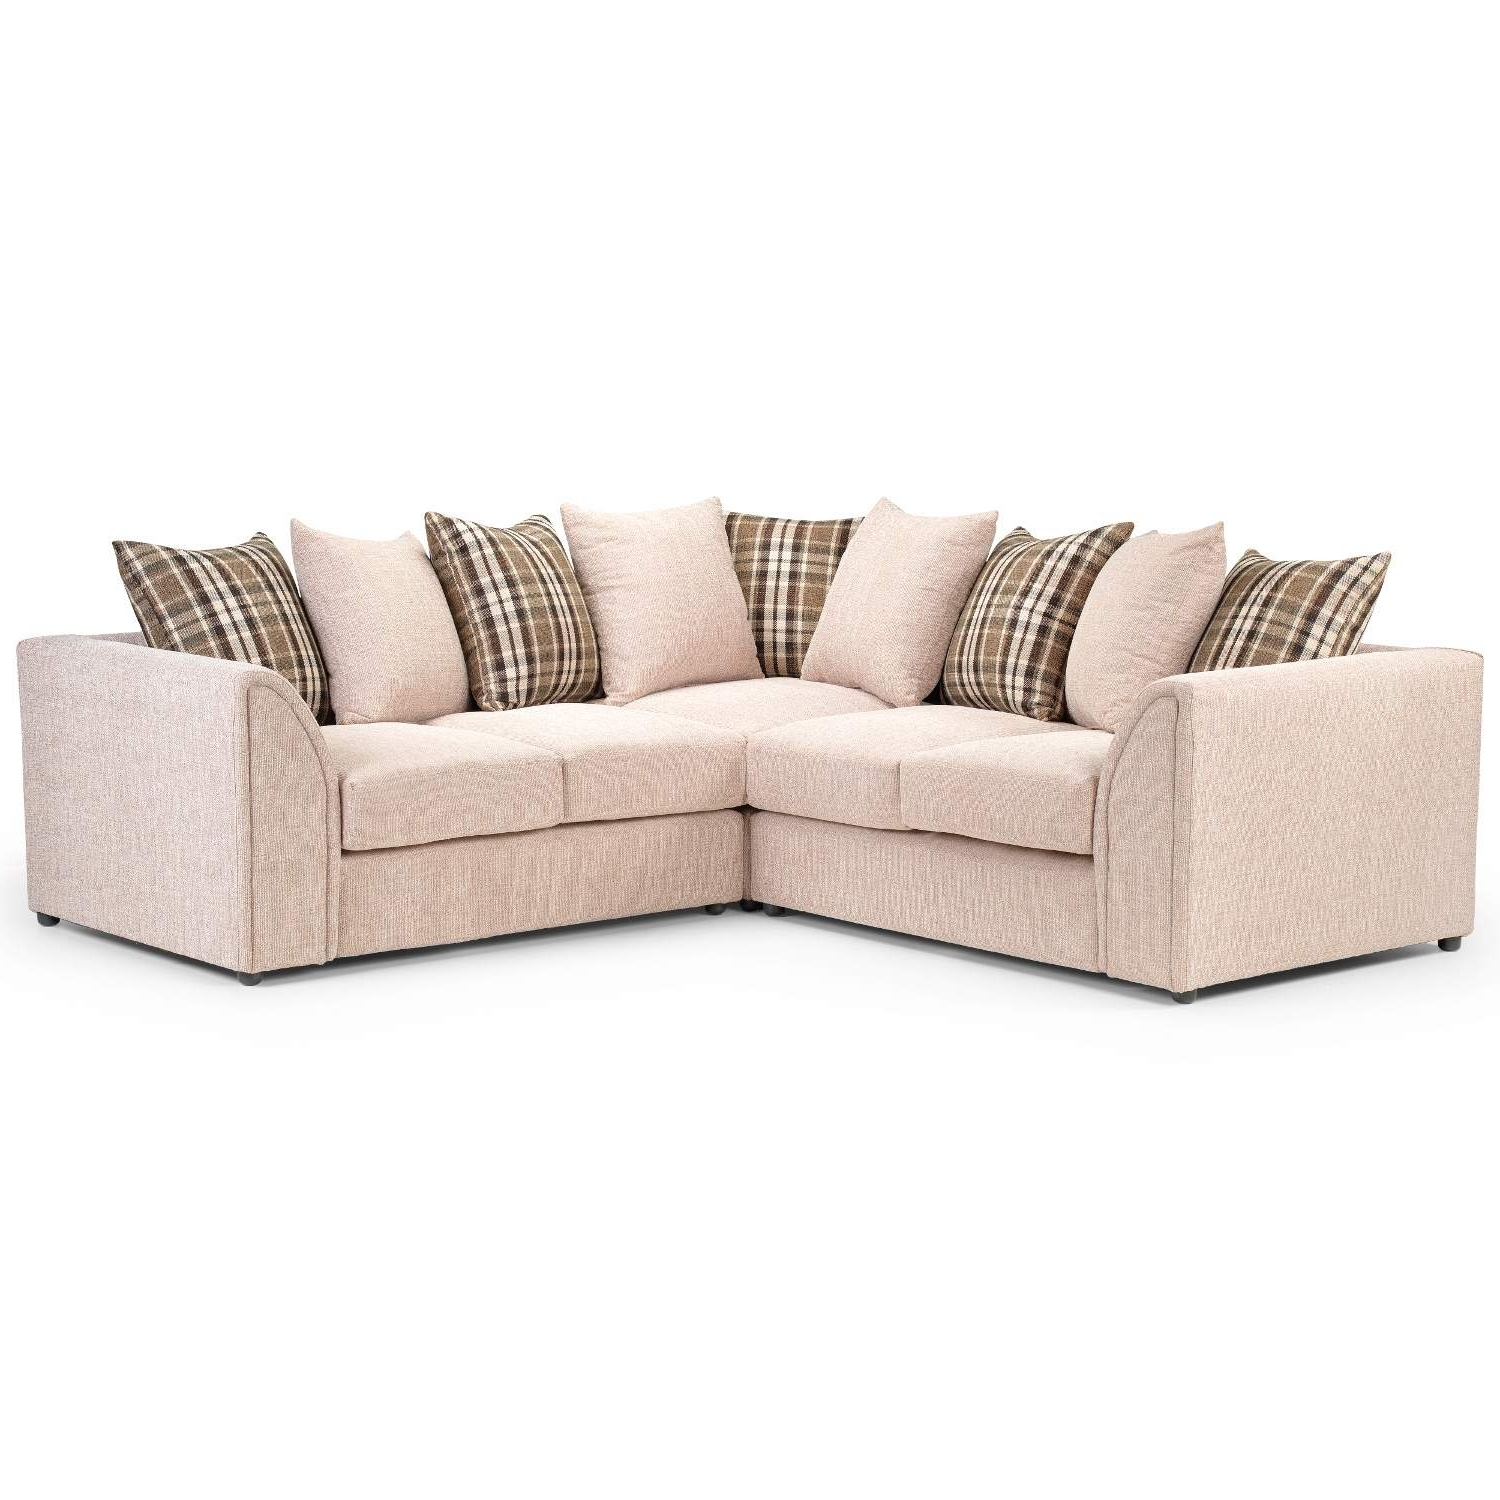 Fabric Corner Sofas Throughout Recent Nevada Large Fabric Corner Sofa – Next Day Delivery Nevada Large (View 3 of 15)